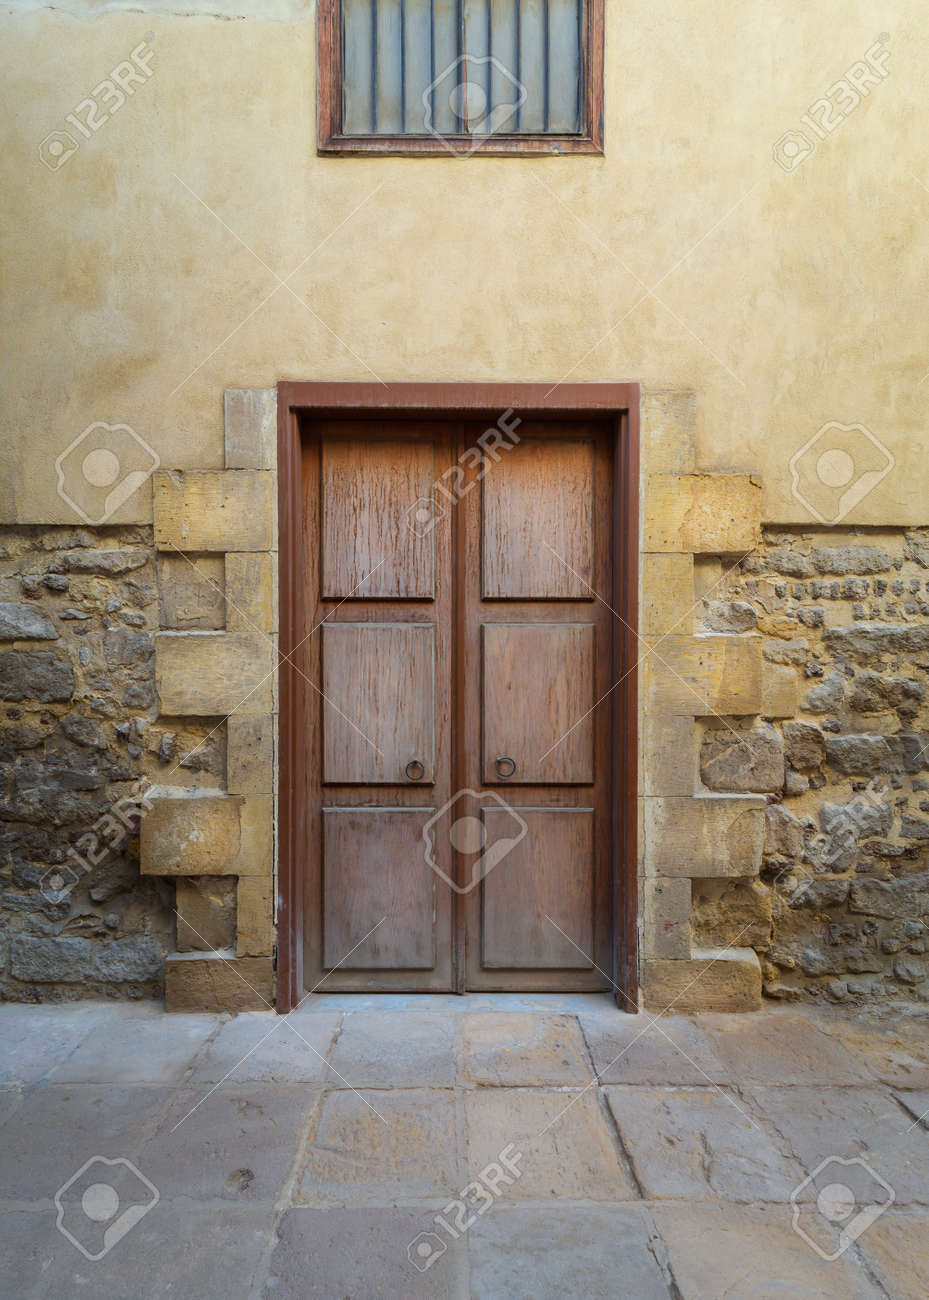 Facade of old abandoned stone bricks wall with decorated wooden door and wrought iron window above - 151605777